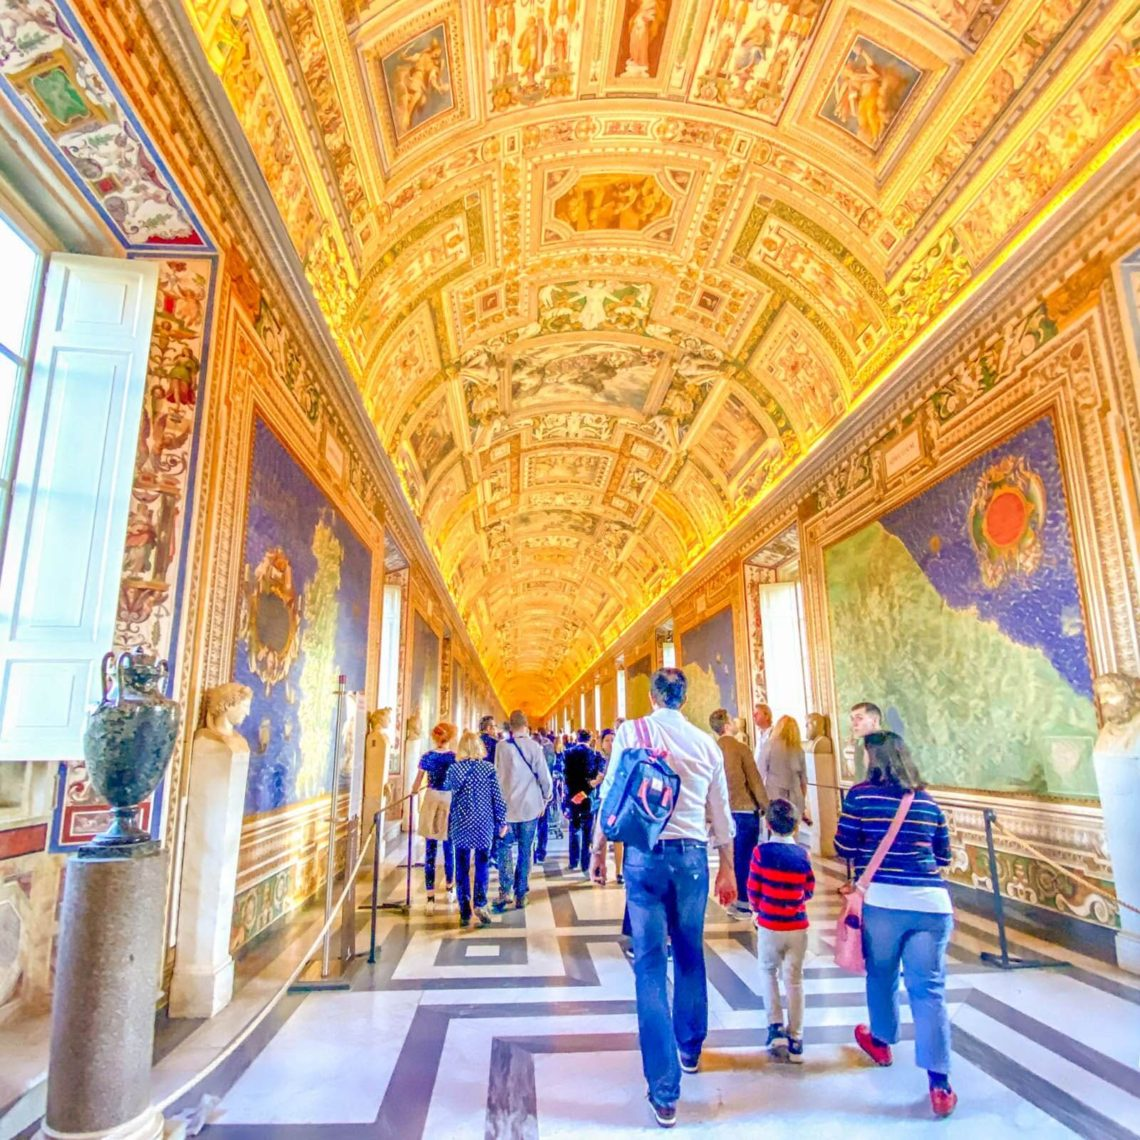 Thanks to the internet, we can visit the world's most famous museums, including the Louvre, the British Museum, and the Vatican without leaving home! Keep reading for the 25 best virtual museum tours. | virtual museum tours for students | virtual art museum tours | British museum virtual tour | louvre museum virtual tours | 360 virtual tour museum | museum virtual tour online | online museum tours| art museums with virtual tours | best virtual museums | best online museums